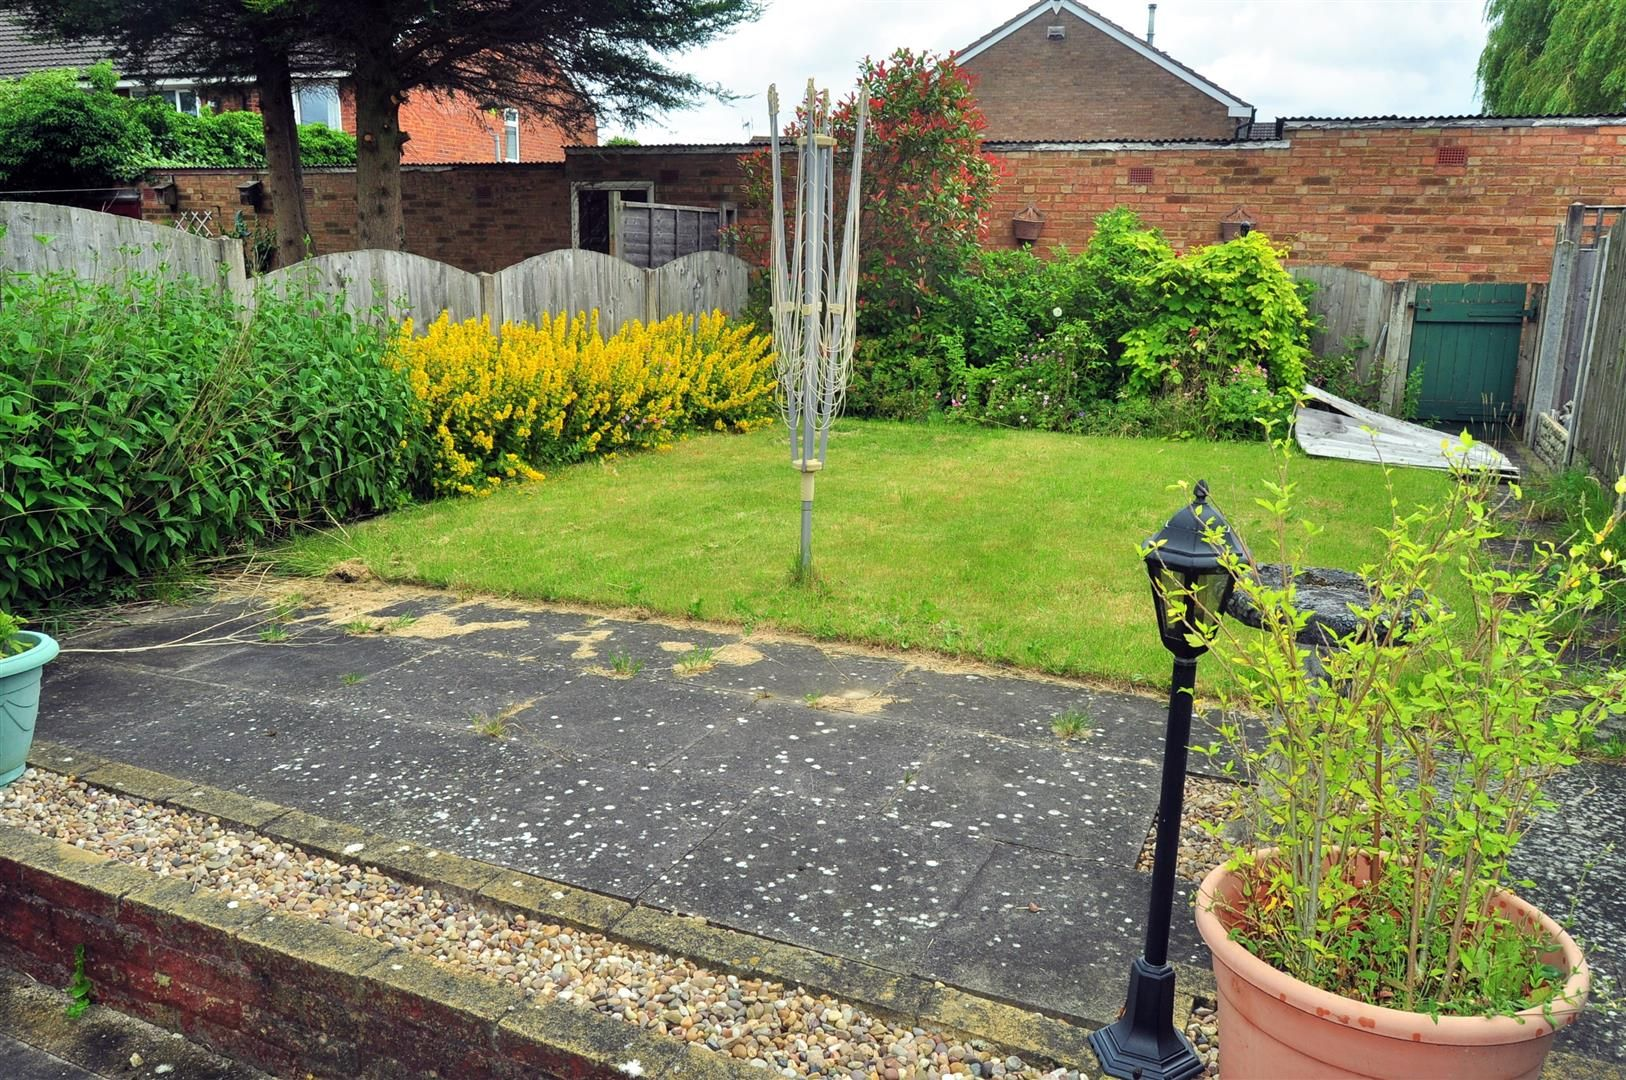 3 bed end-of-terrace for sale in Quinton  - Property Image 12